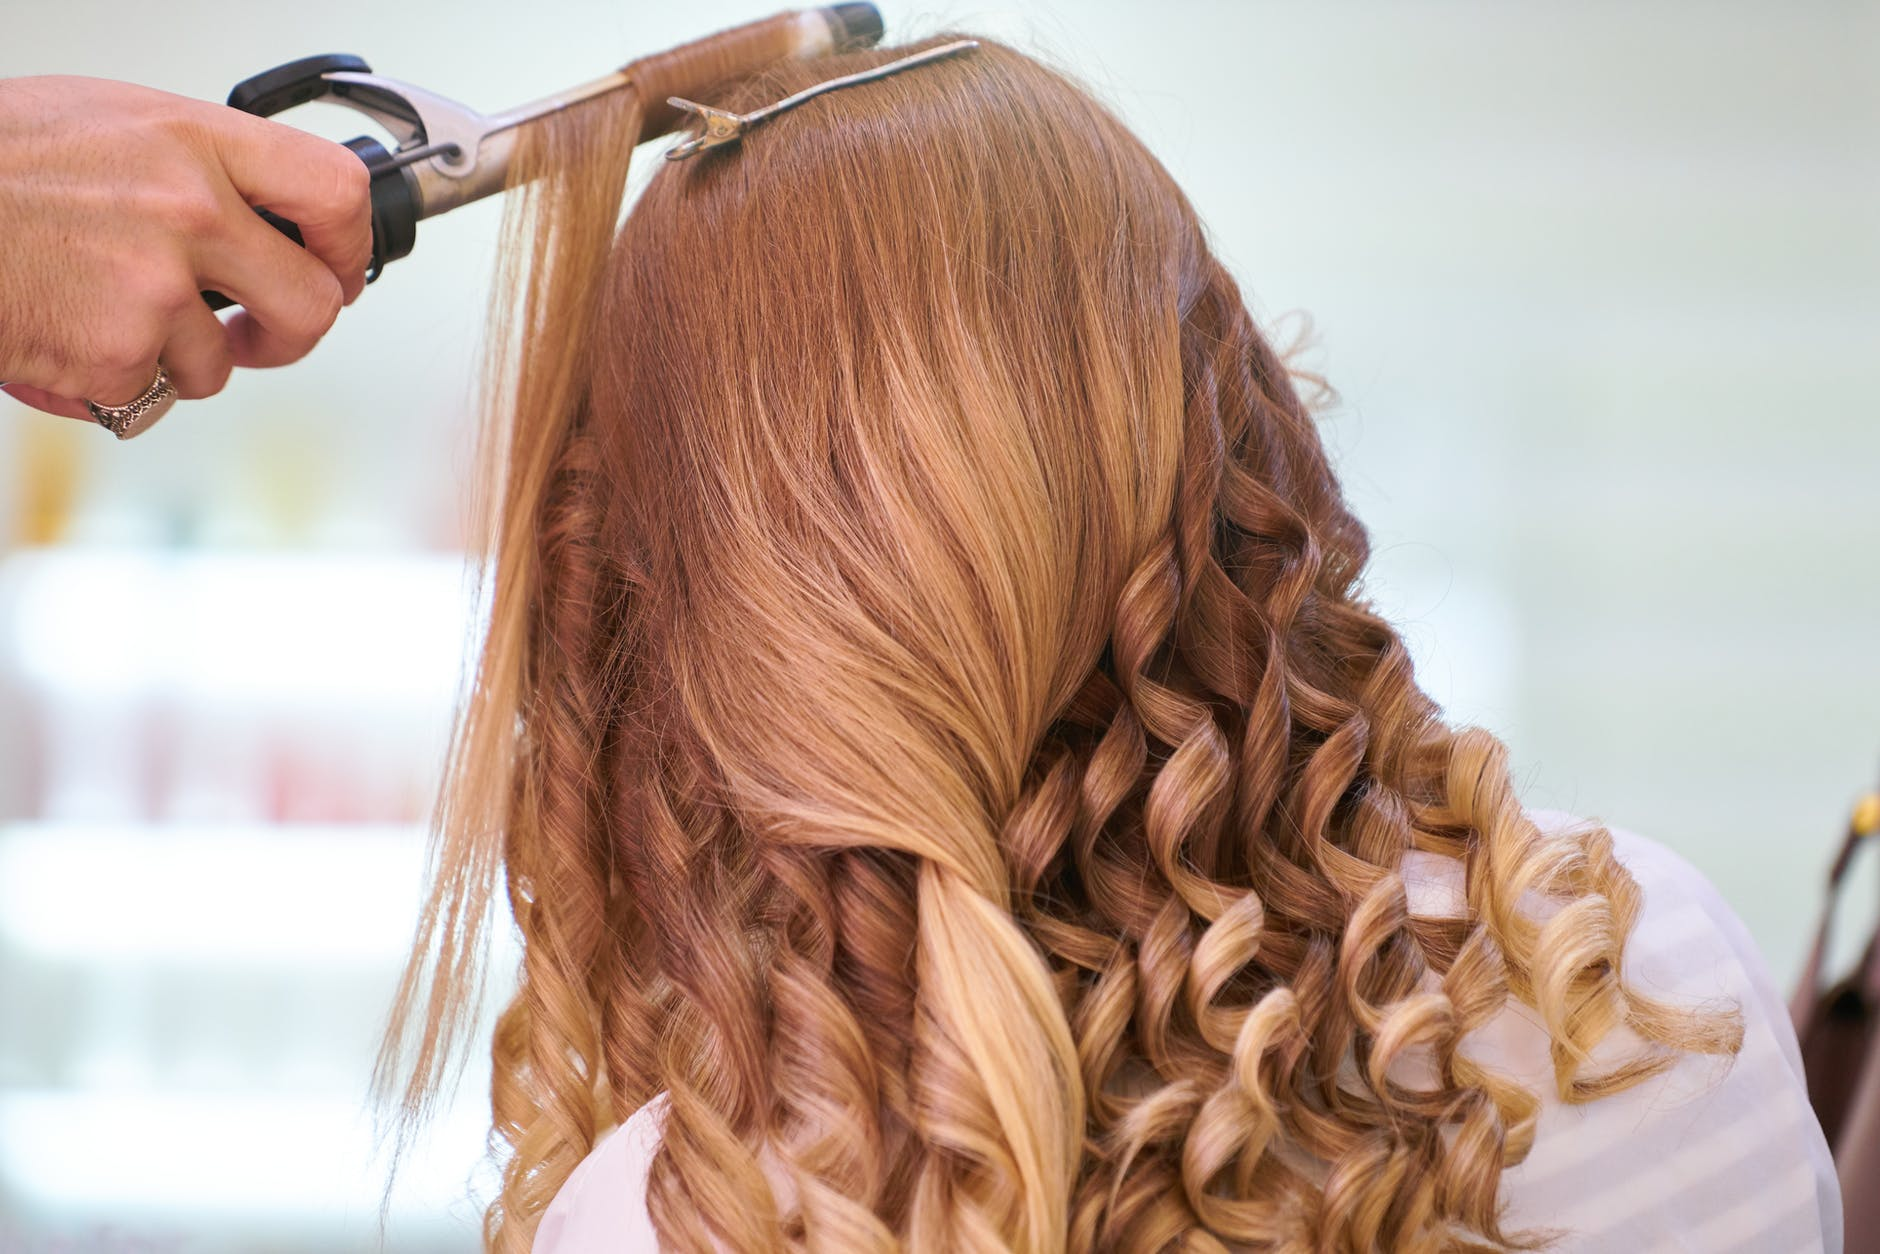 A woman getting her hair curled